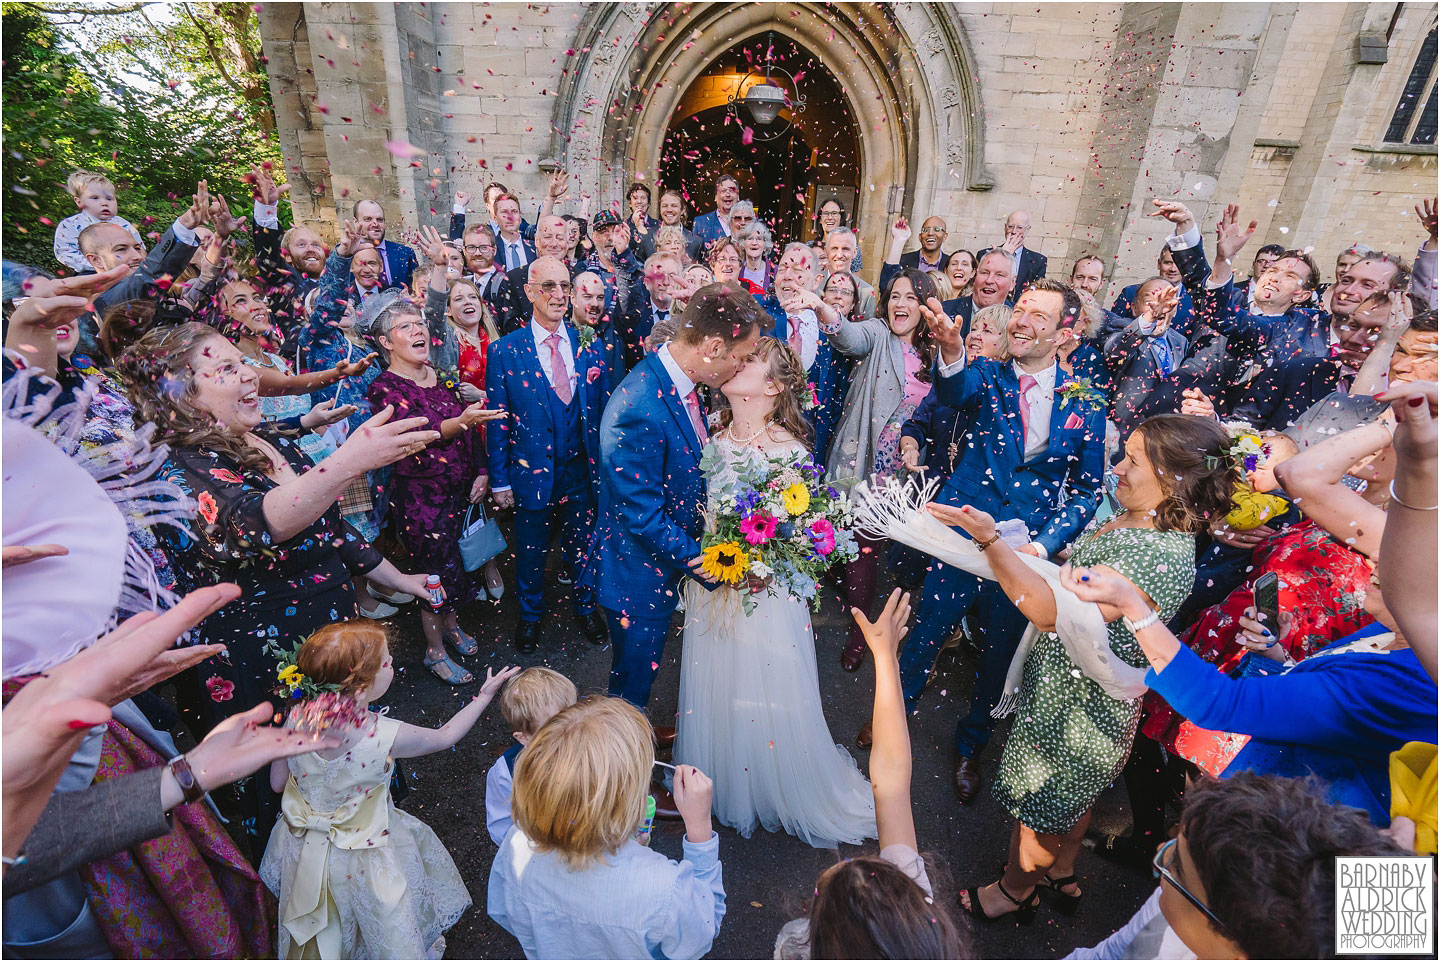 Wedding photos of confetti St Matthews Chapel Allerton, Wedding reception photos at Lineham Farm near Eccup and Arthington on the outskirts of Leeds by Yorkshire Wedding Photographer Barnaby Aldrick